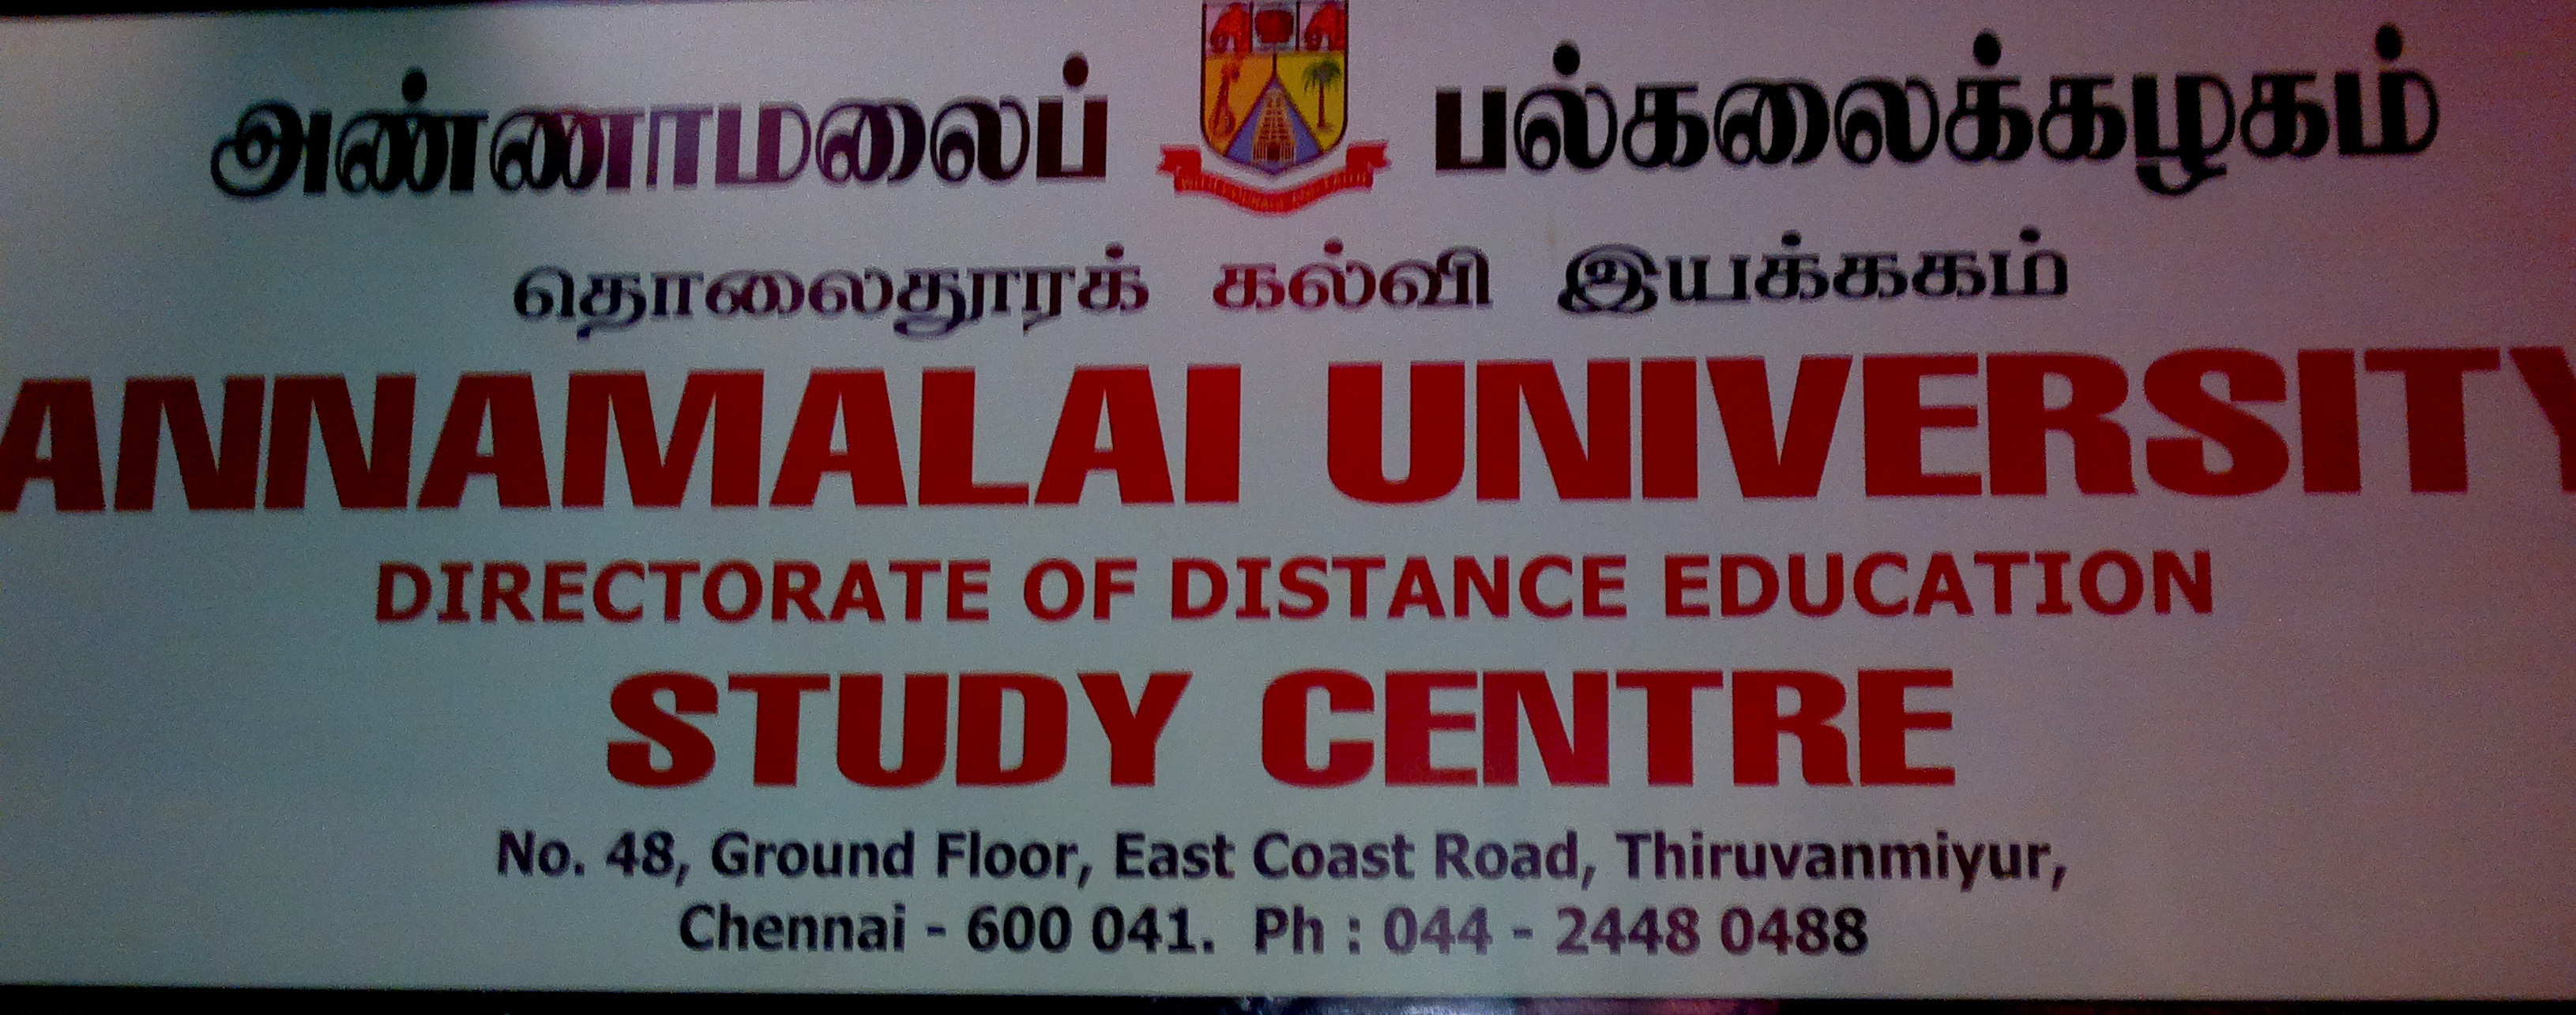 Annamalai University Study Centres in India | DDE Centre ...